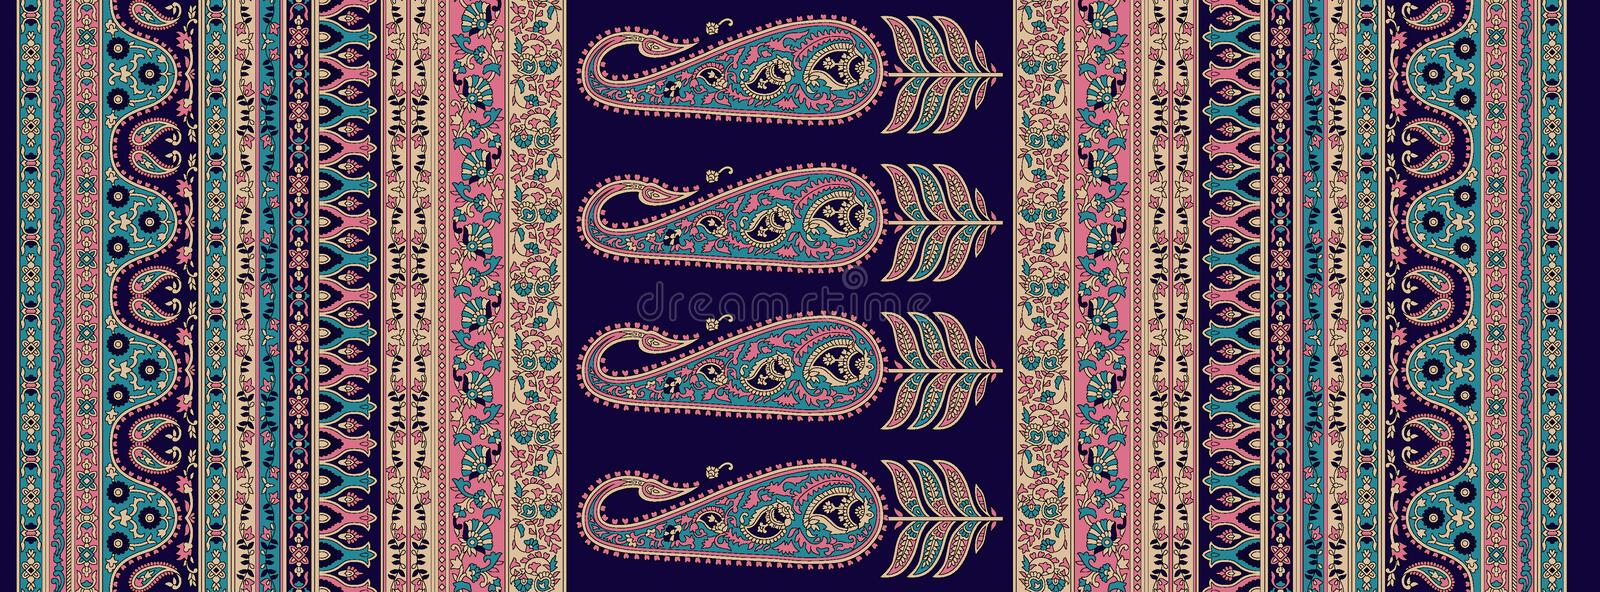 Seamless traditional design paisley background vector illustration